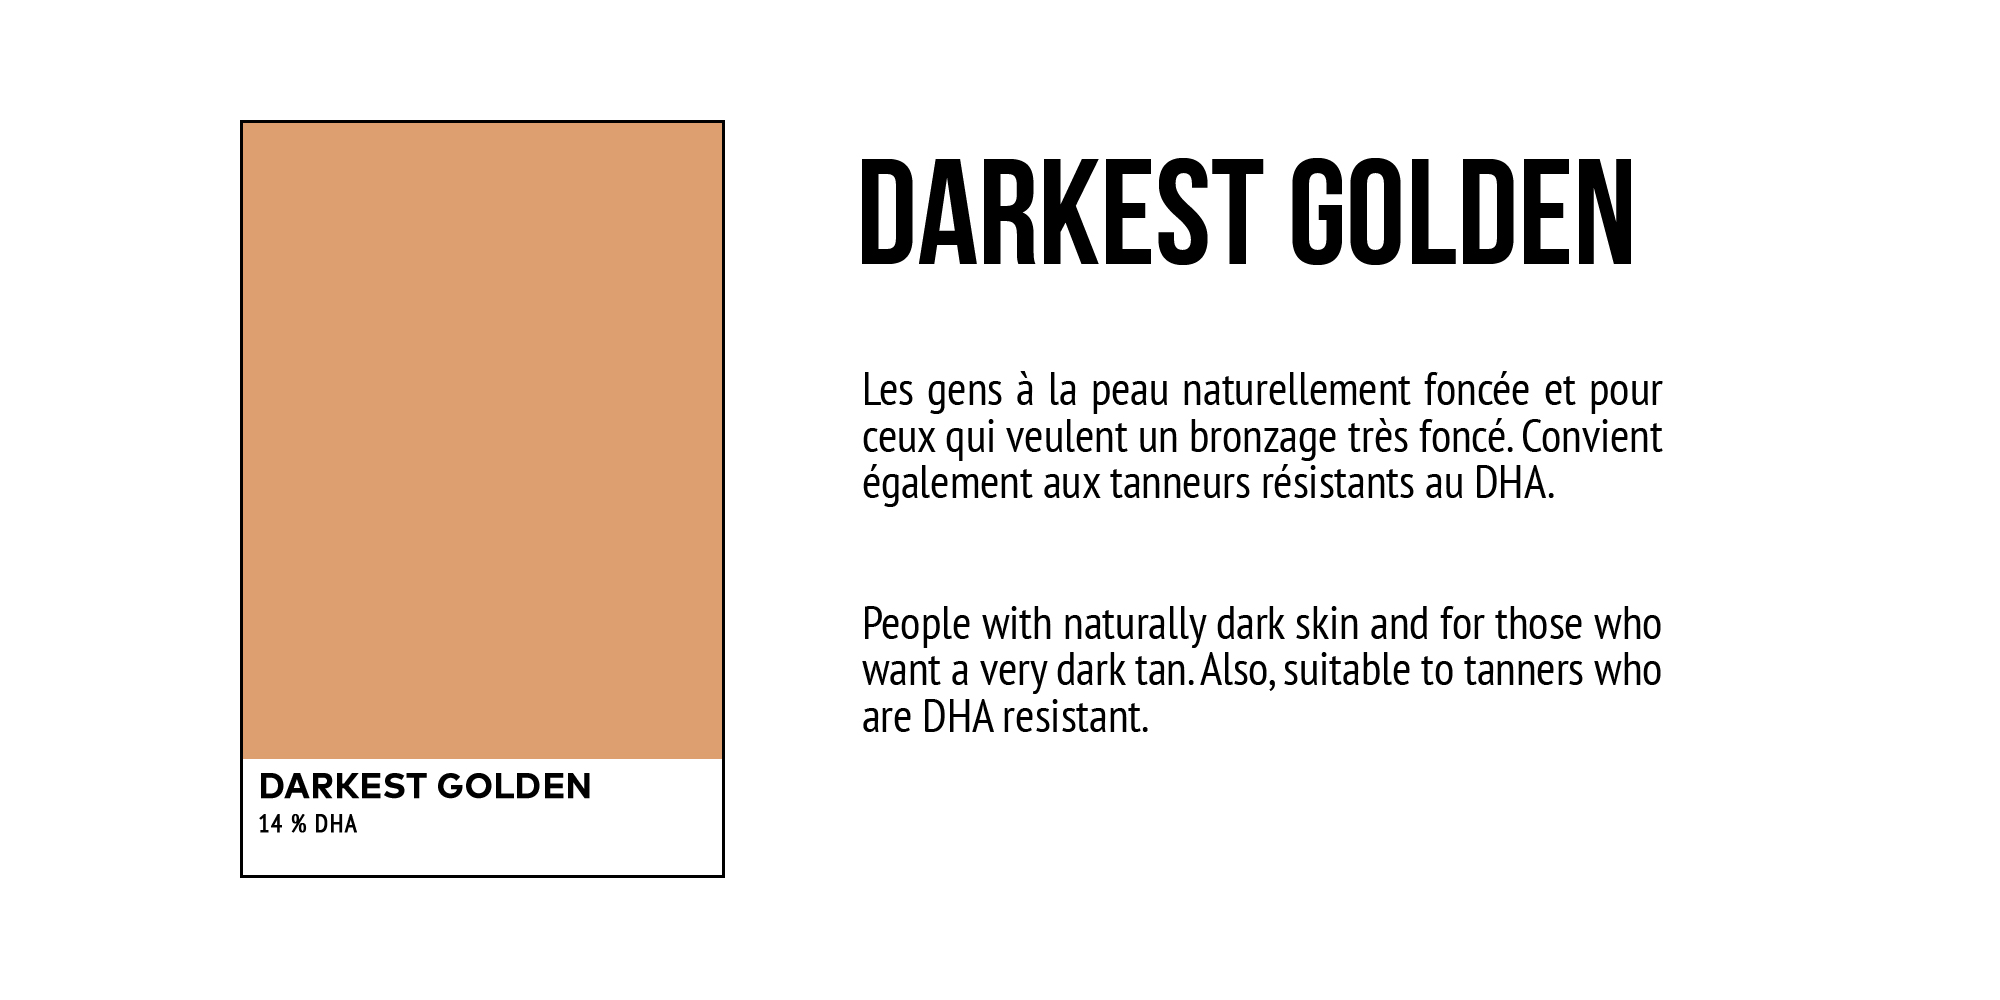 5 DARKEST GOLDEN DESCRIPTION  copie 2.jpg